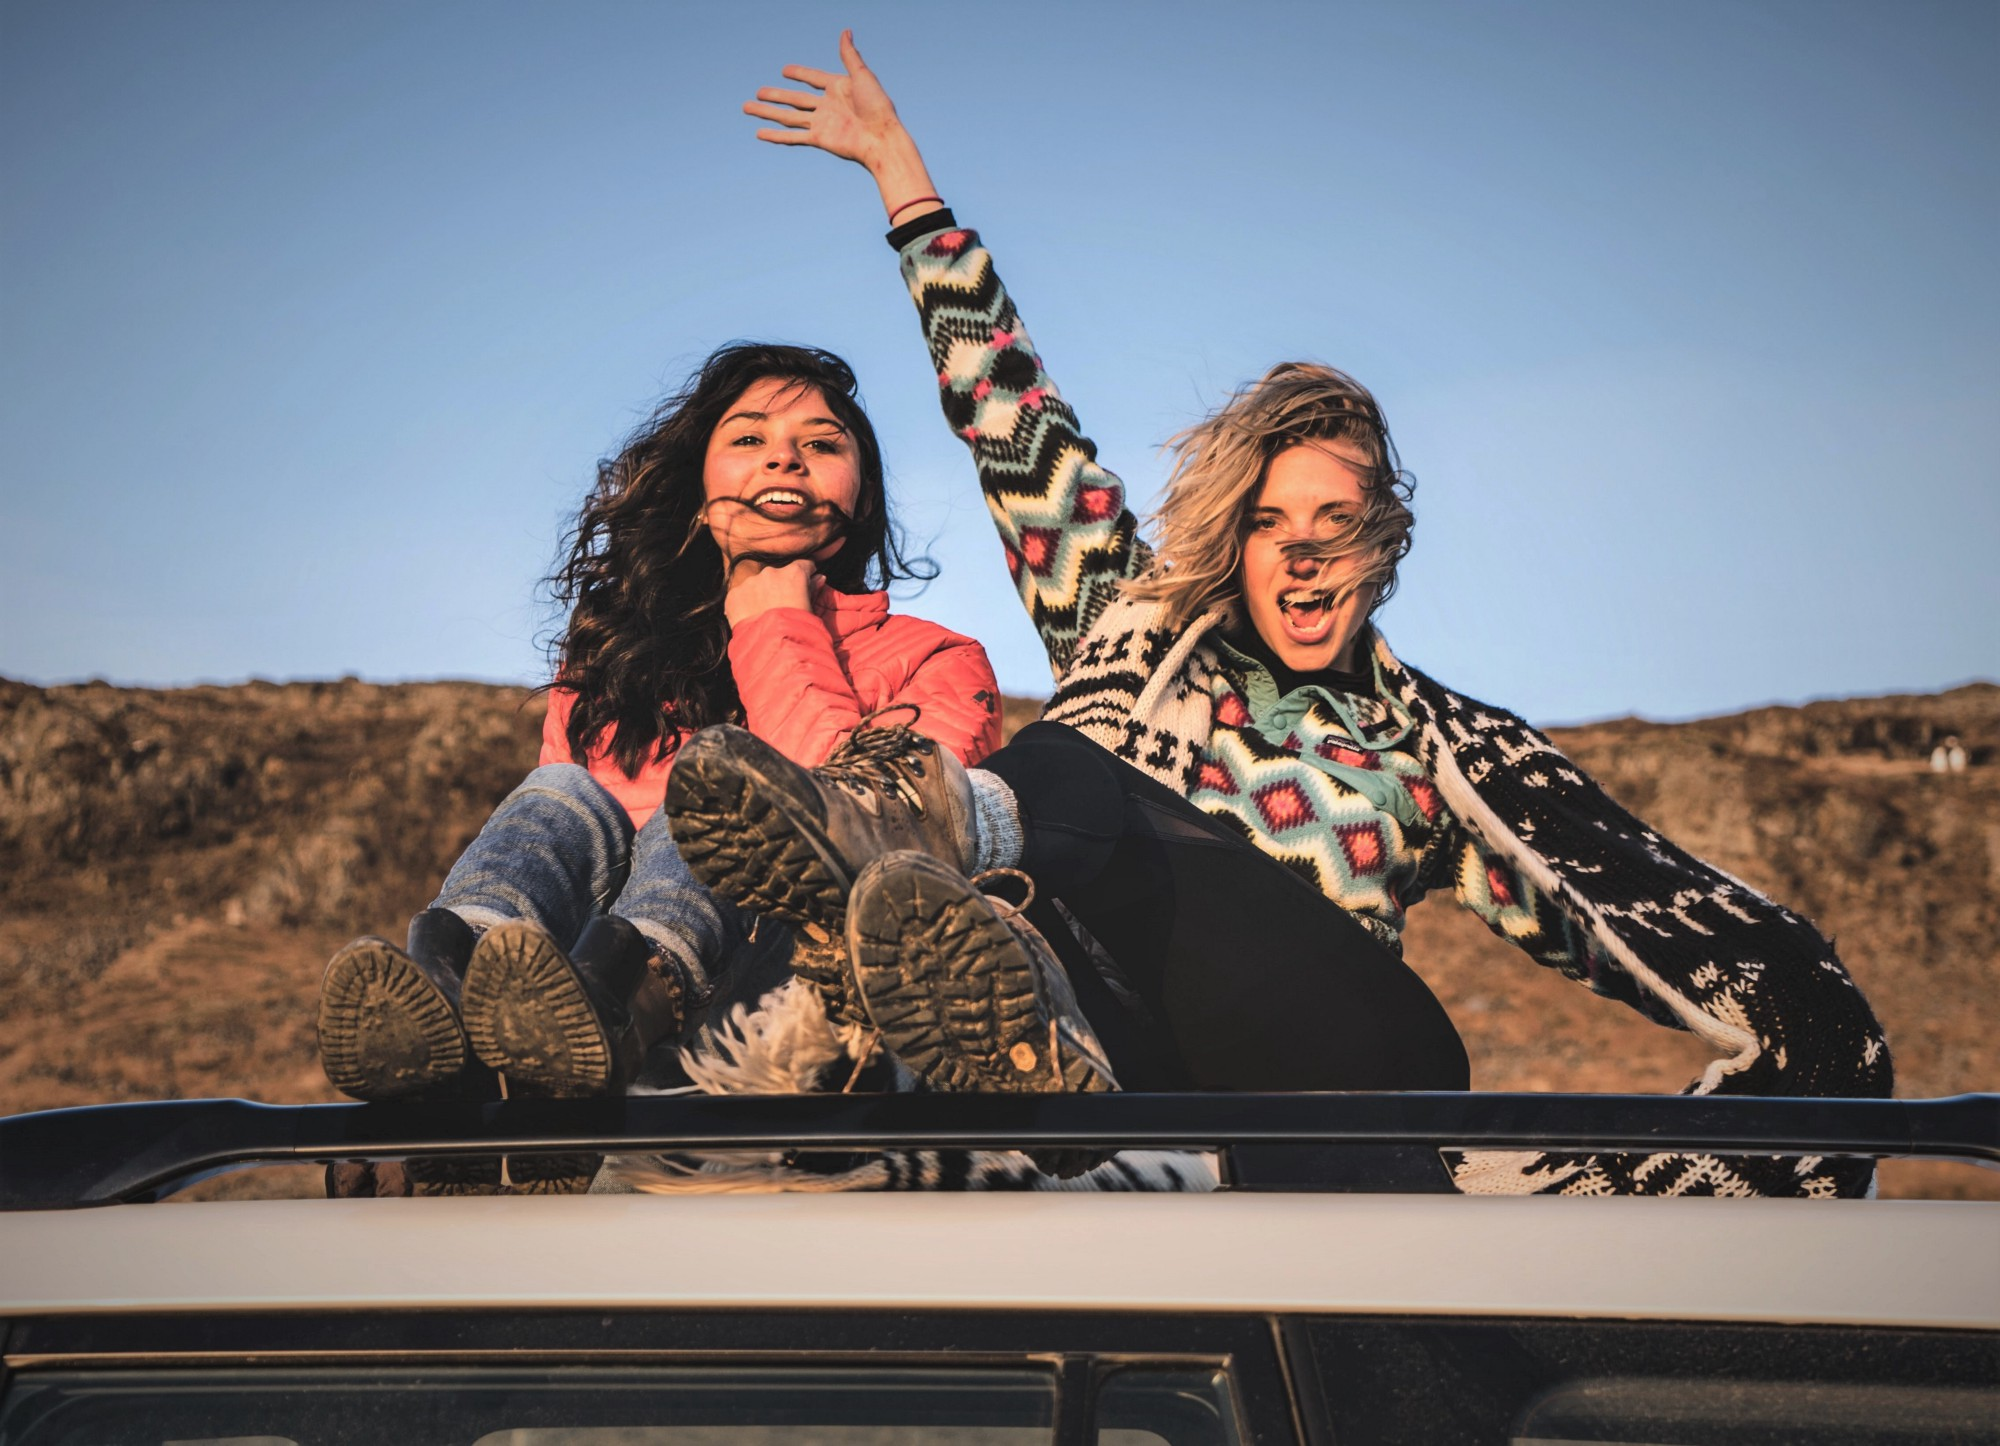 Two girls sitting on top of vehicle with wind blowing in their hair